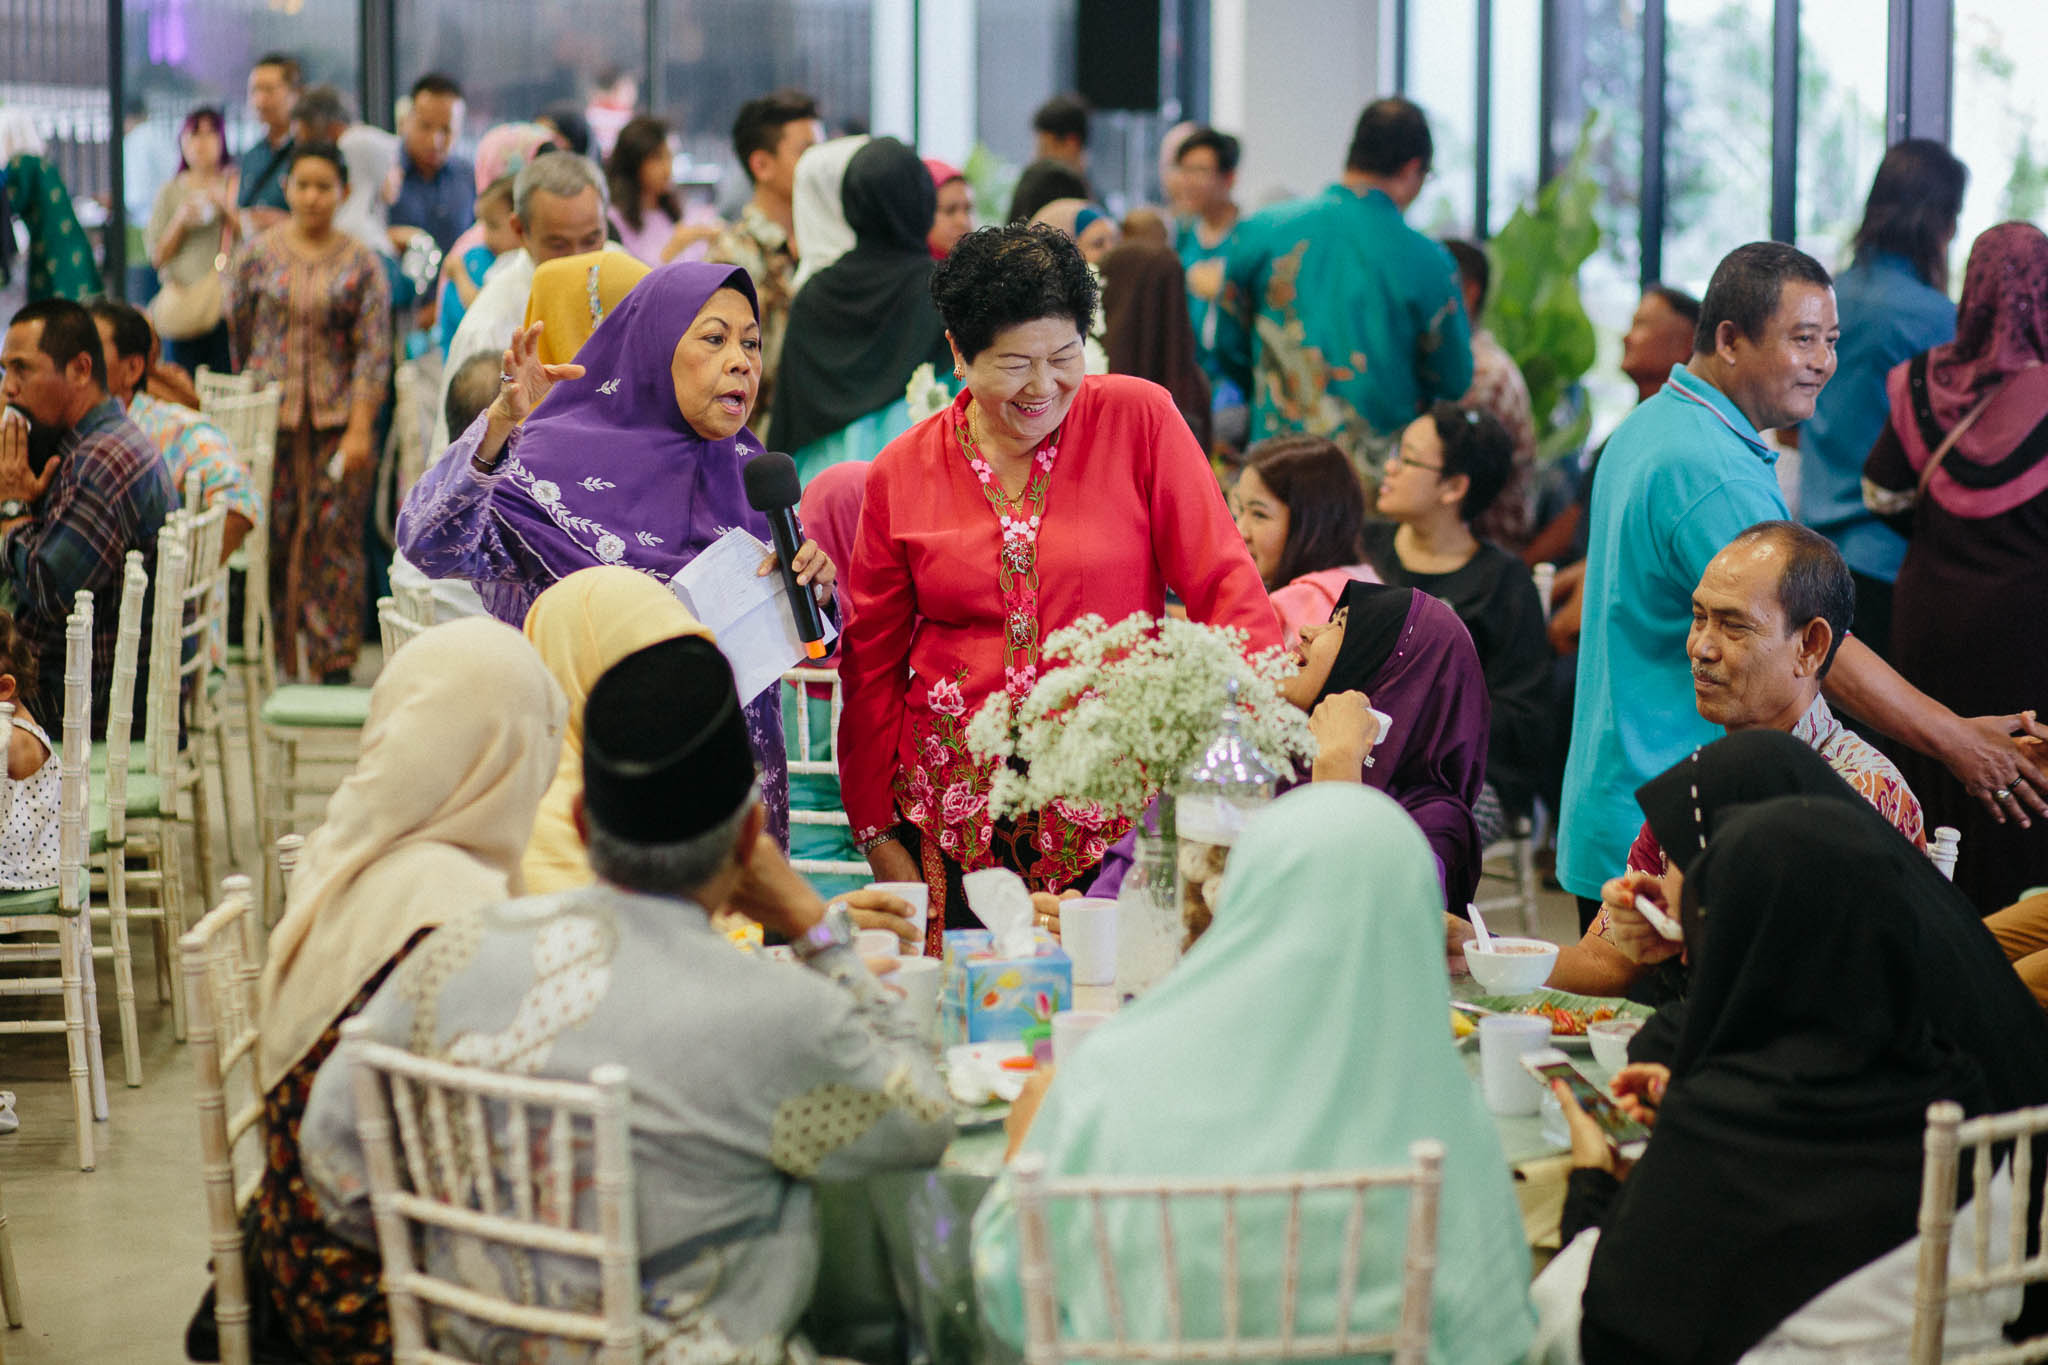 singapore-wedding-photographer-wedding-halimah-muhsin-044.jpg